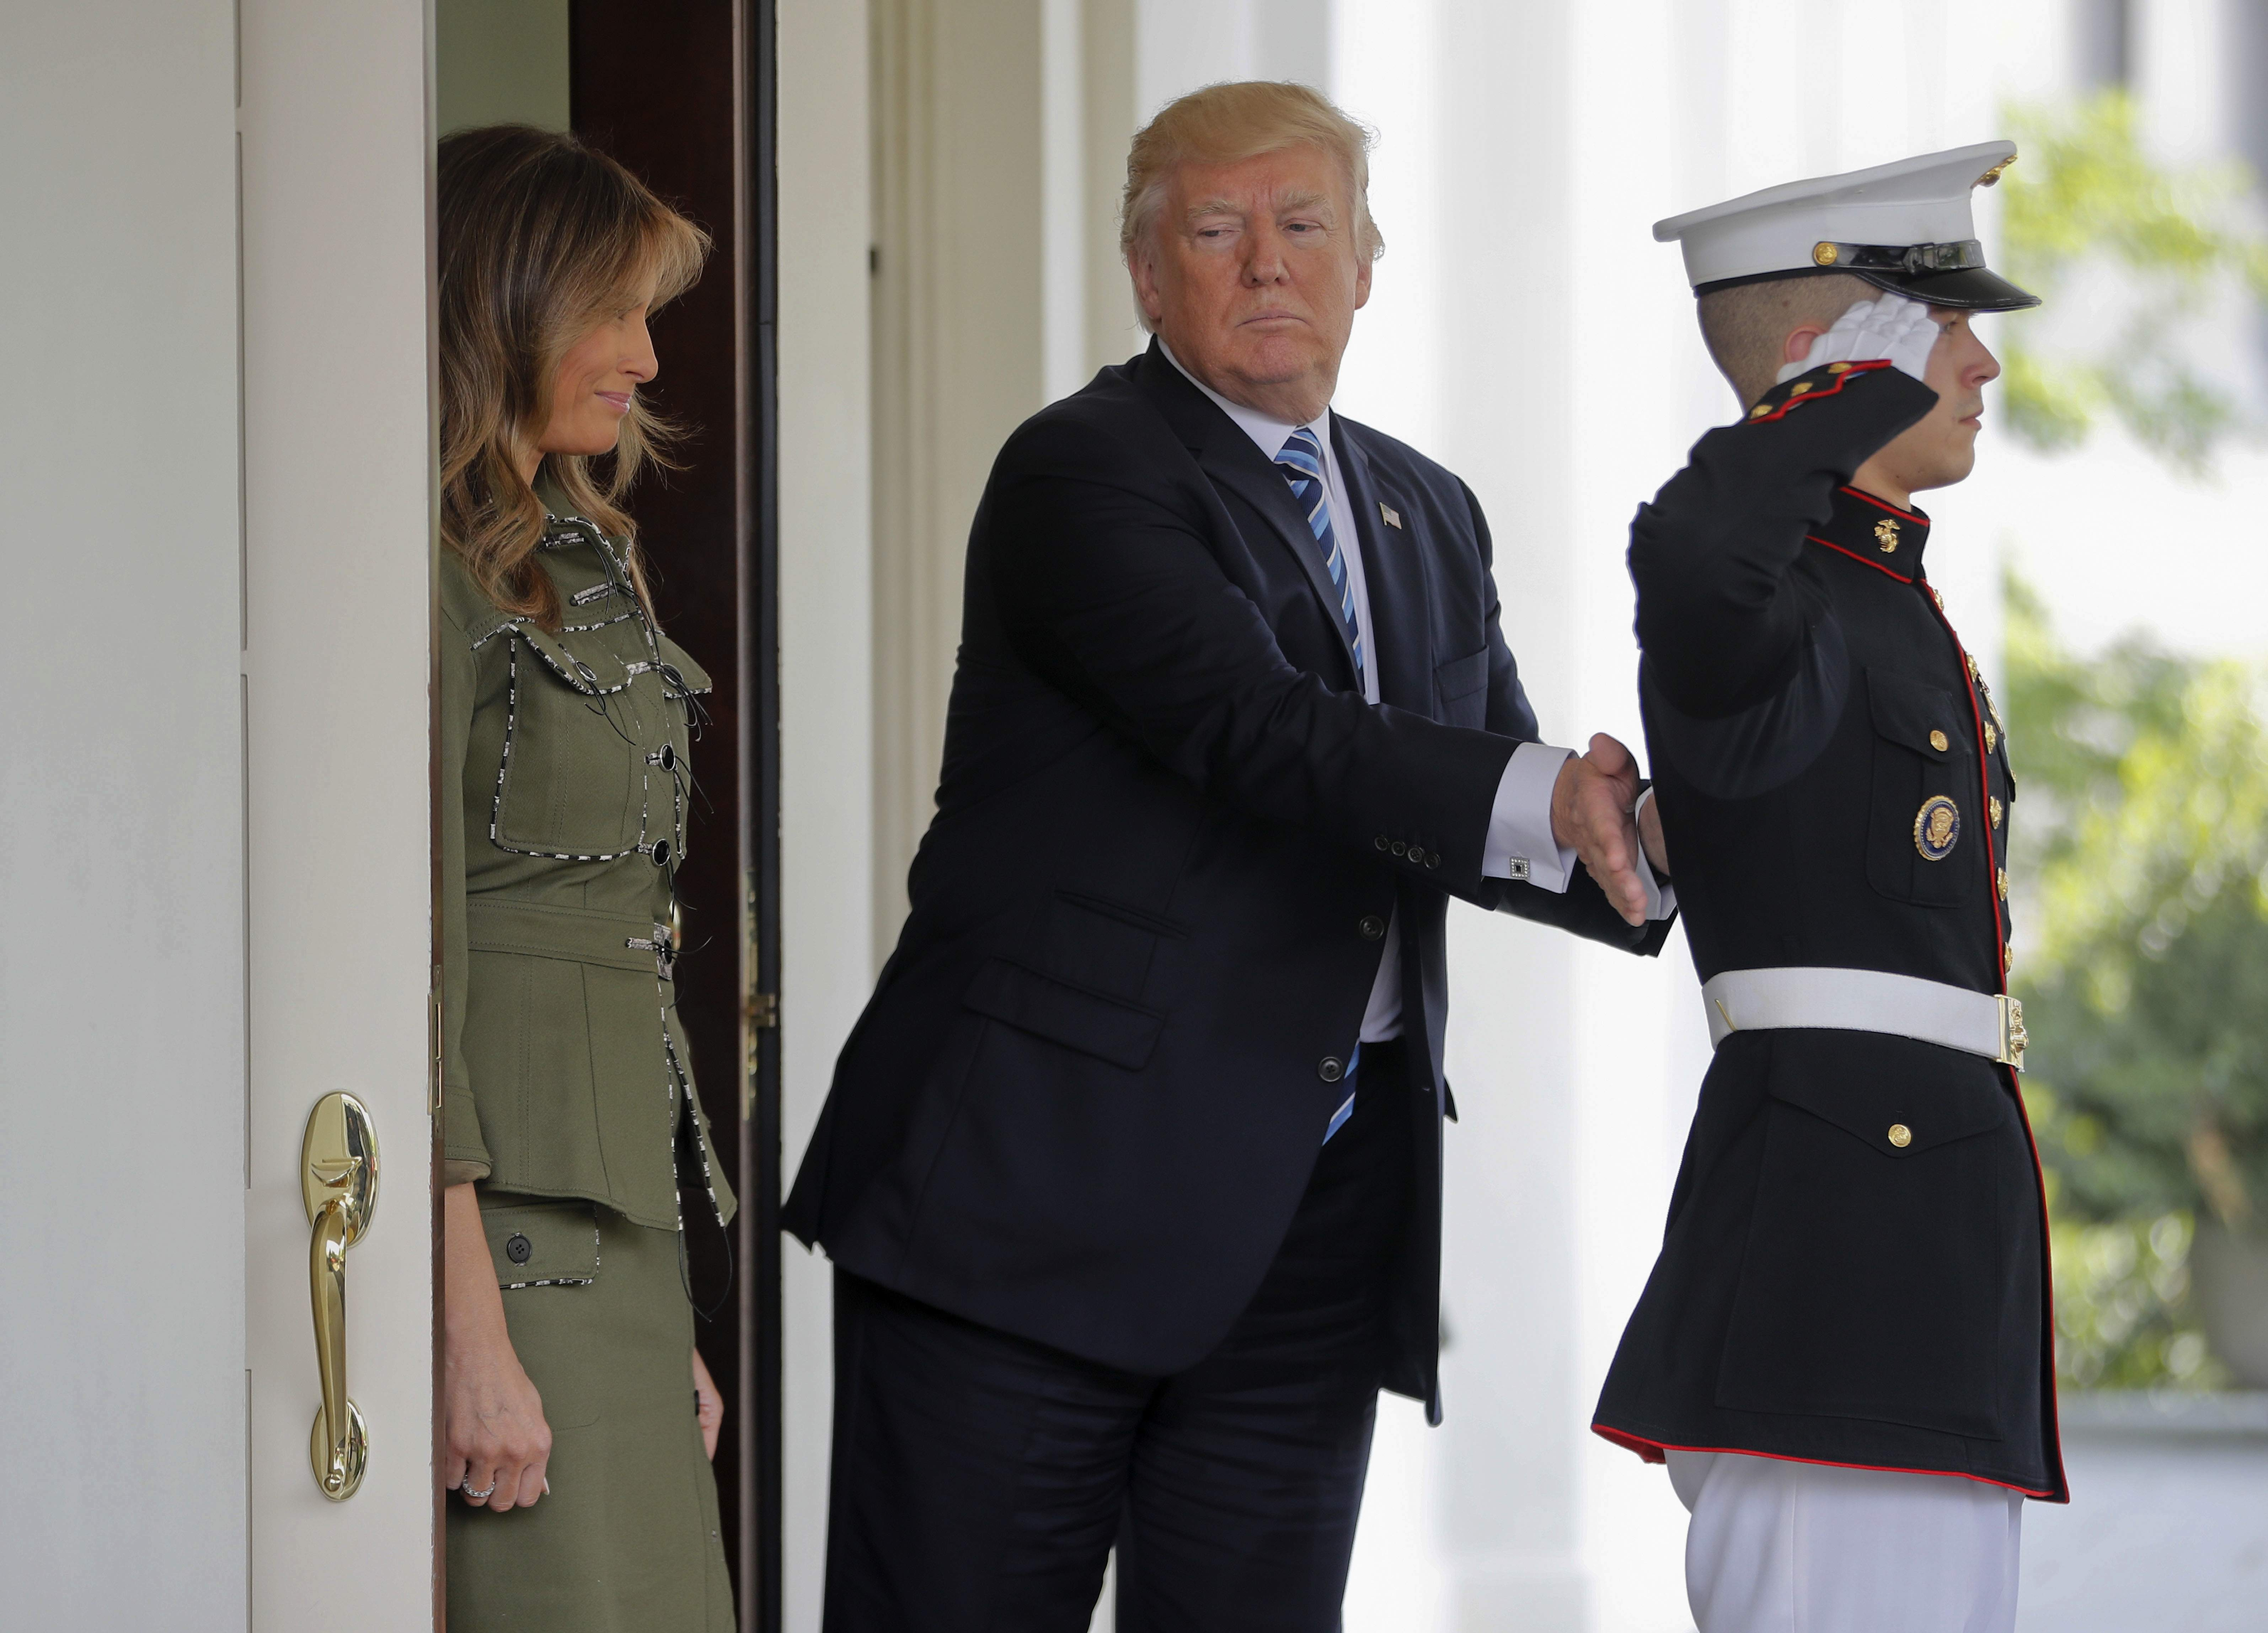 DAY 98 - In this April 27, 2017 photo, President Donald Trump pats a U.S. Marine on the back after he and first lady Melania Trump walked Argentine President Mauricio Macri and his wife Juliana Awada to their vehicle outside the West Wing of the White House in Washington. (AP Photo/Pablo Martinez Monsivais)